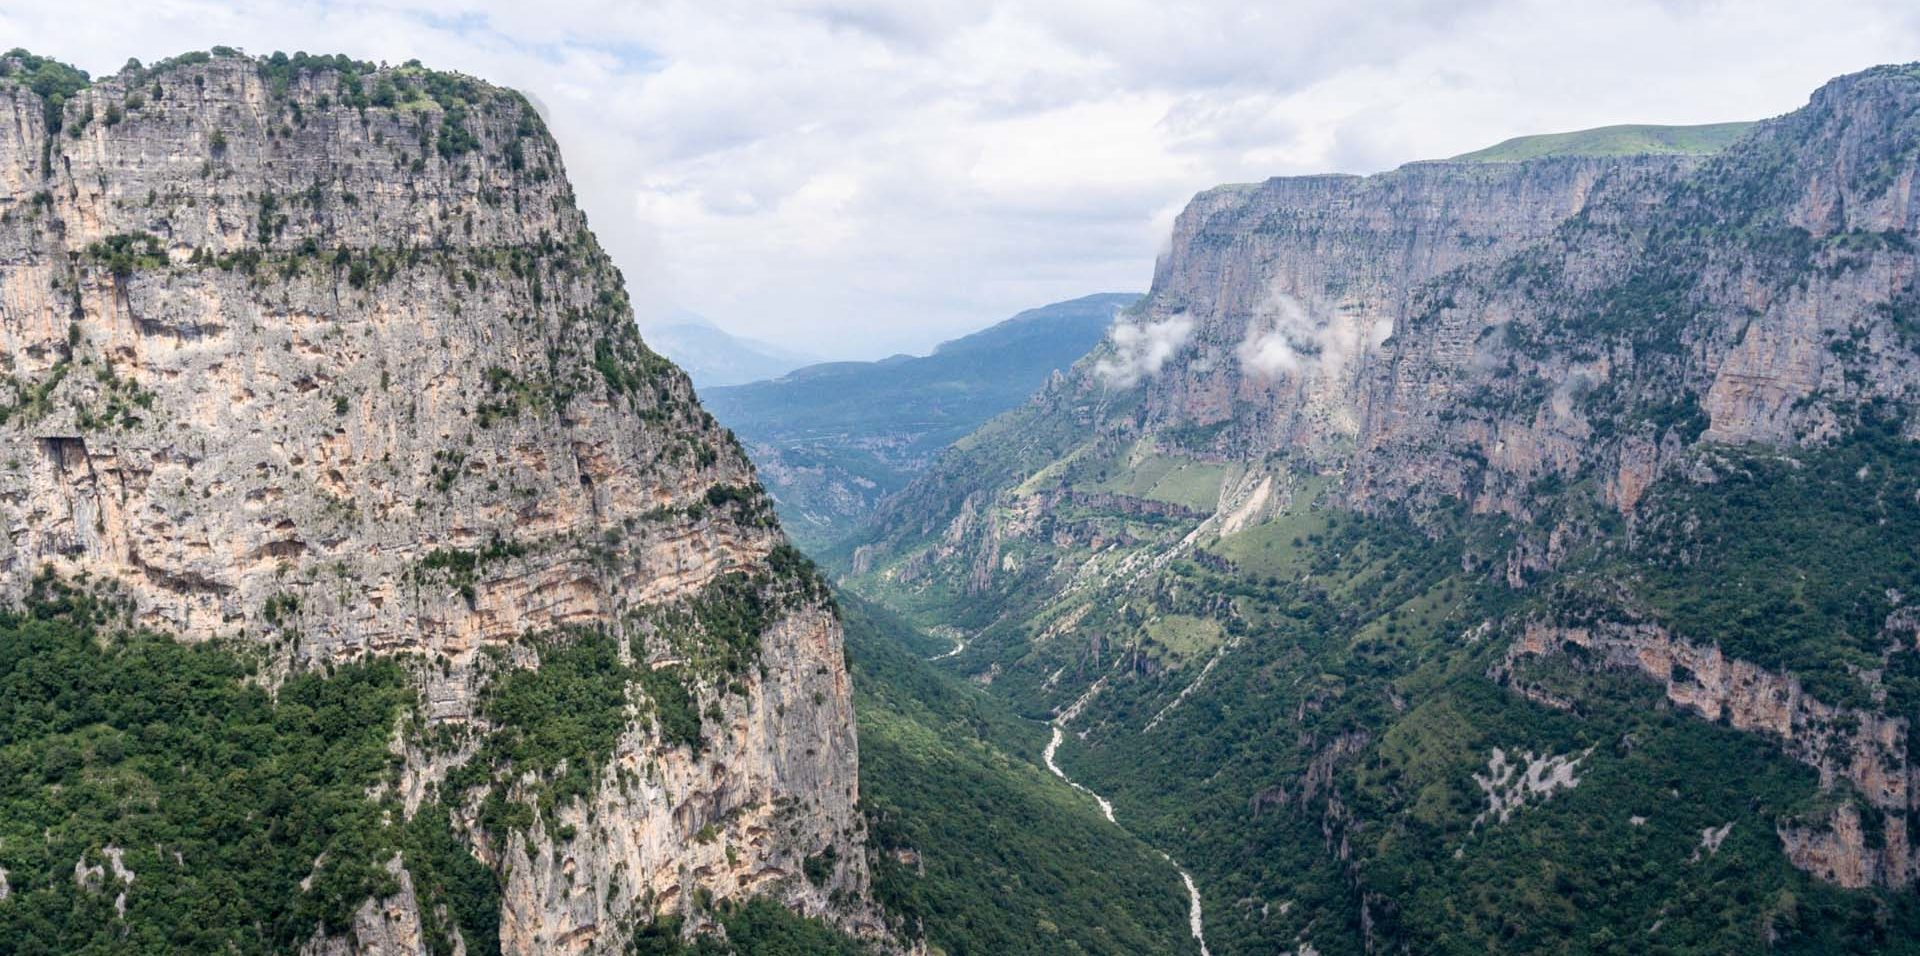 Discover The Beautiful Vikos Gorge With A Local Guide On The Vikos Gorge Hiking Tour From Monodendri Village - Ioannina_94